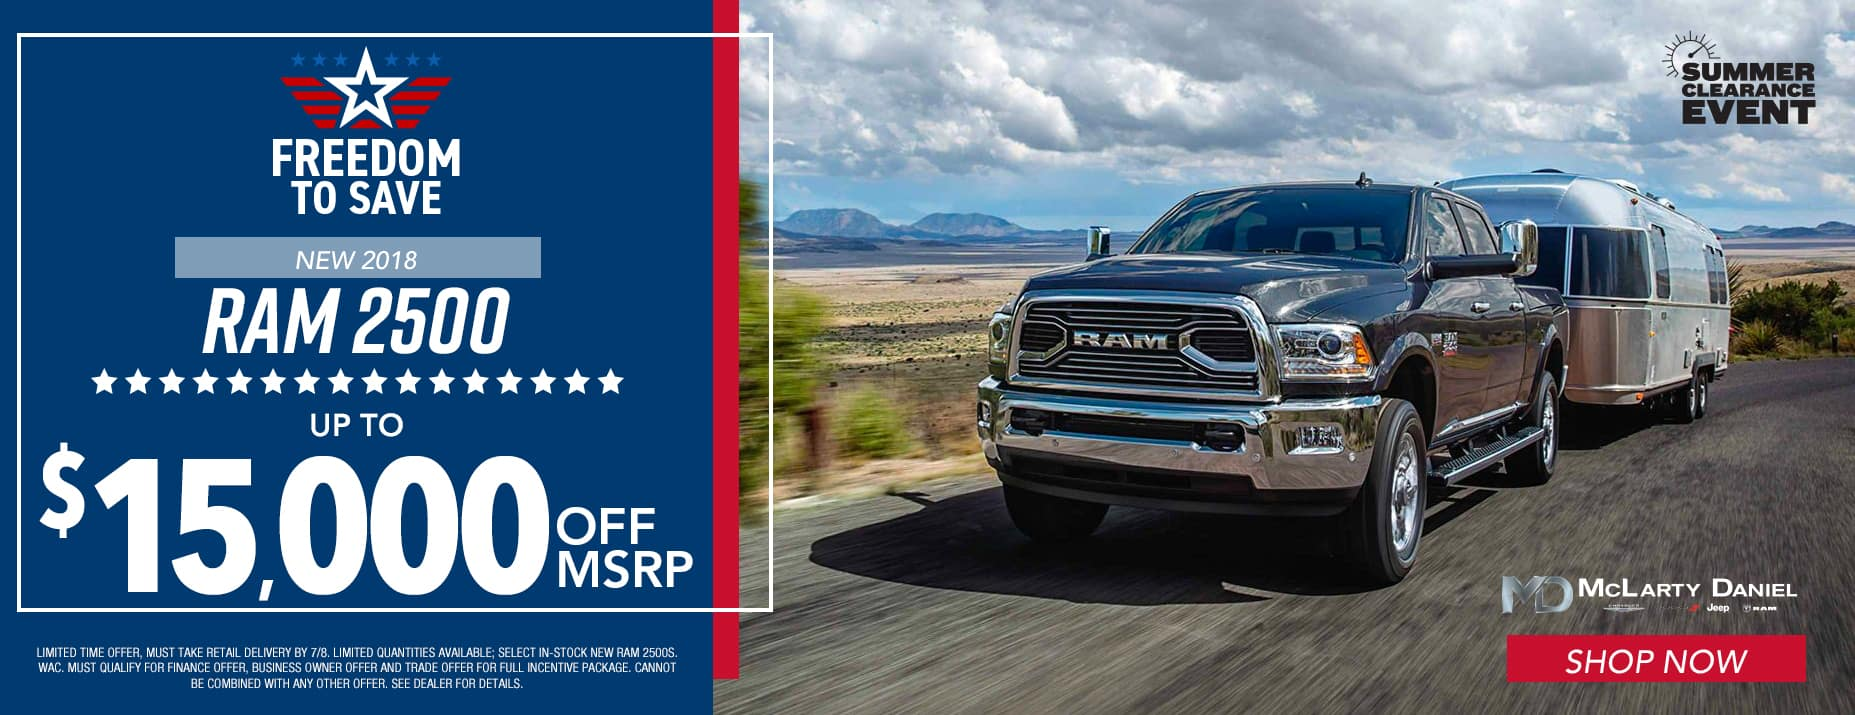 2018 Ram 2500, up to $15,000 off MSRP.